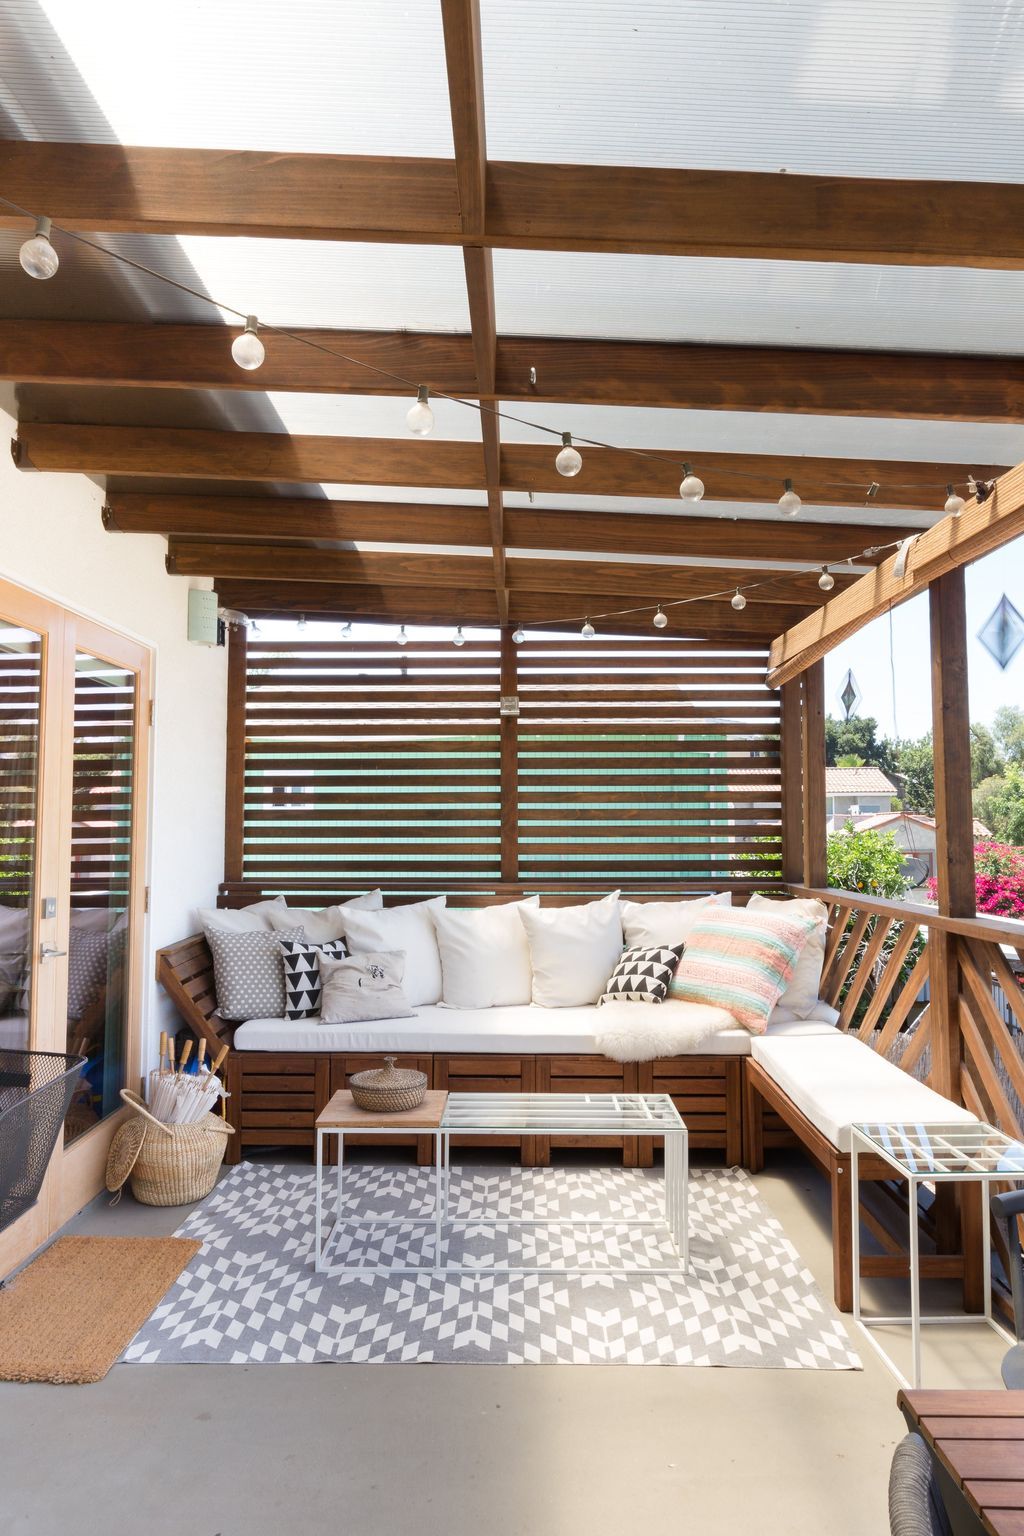 Admirable Cozy Patio Design Ideas To Relaxing On A Sunny Day 04